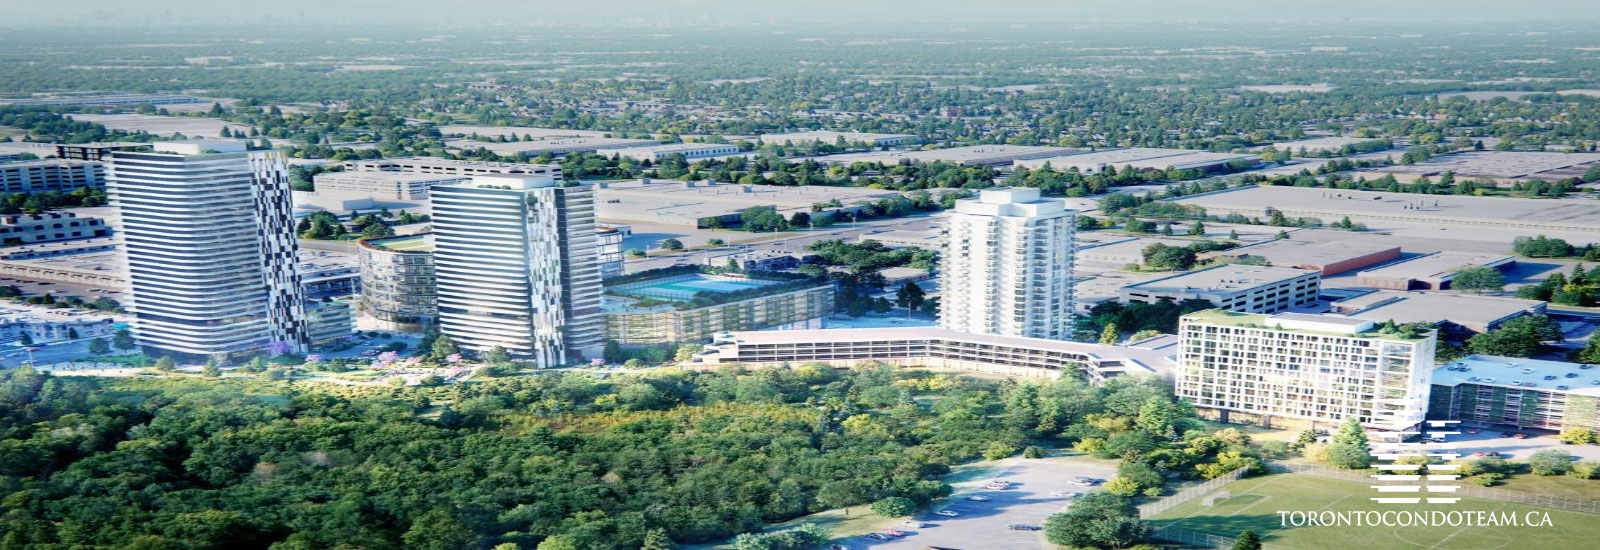 900 York Mills Road Condos For Sale